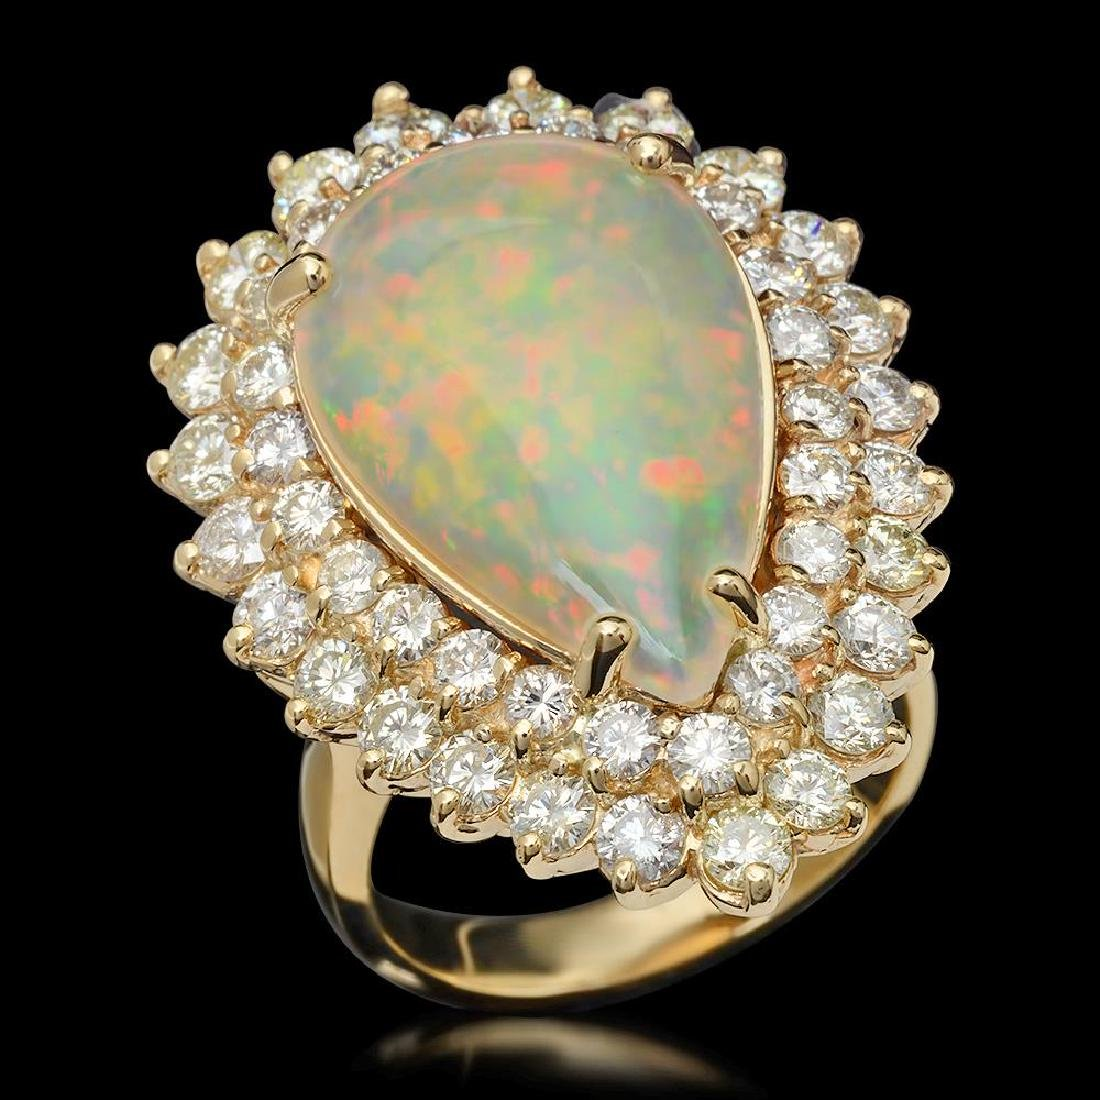 14K Gold 5.32ct Opal & 3.21ct Diamond Ring